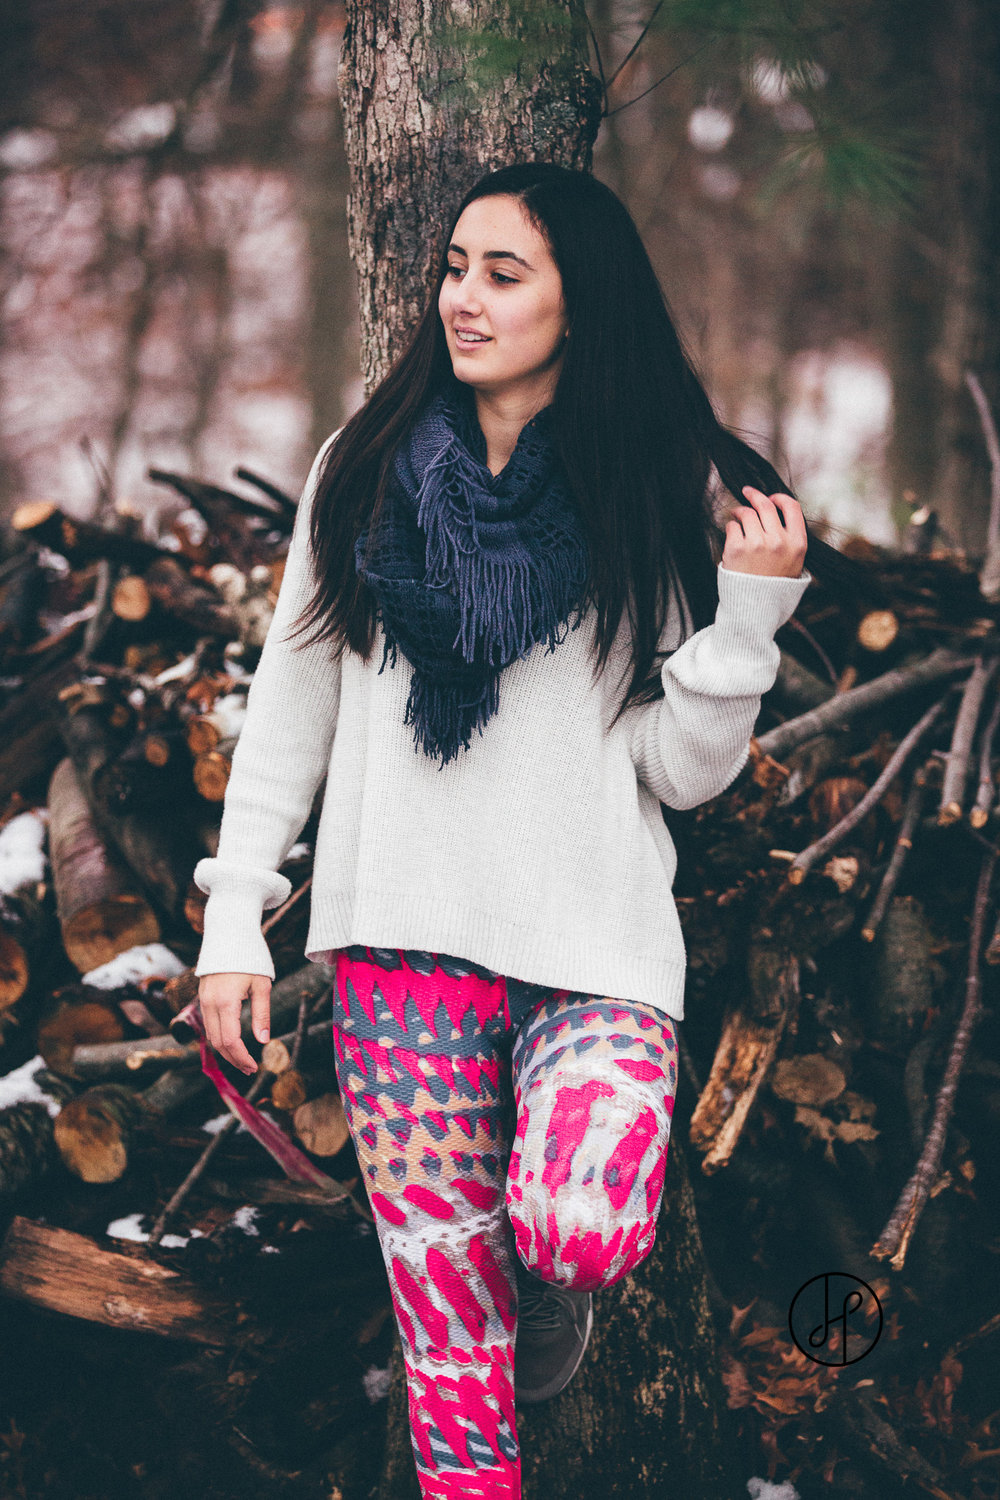 Pitanga_Winter_Fitness_Leggings_Jennifer_Helmka-5.jpg